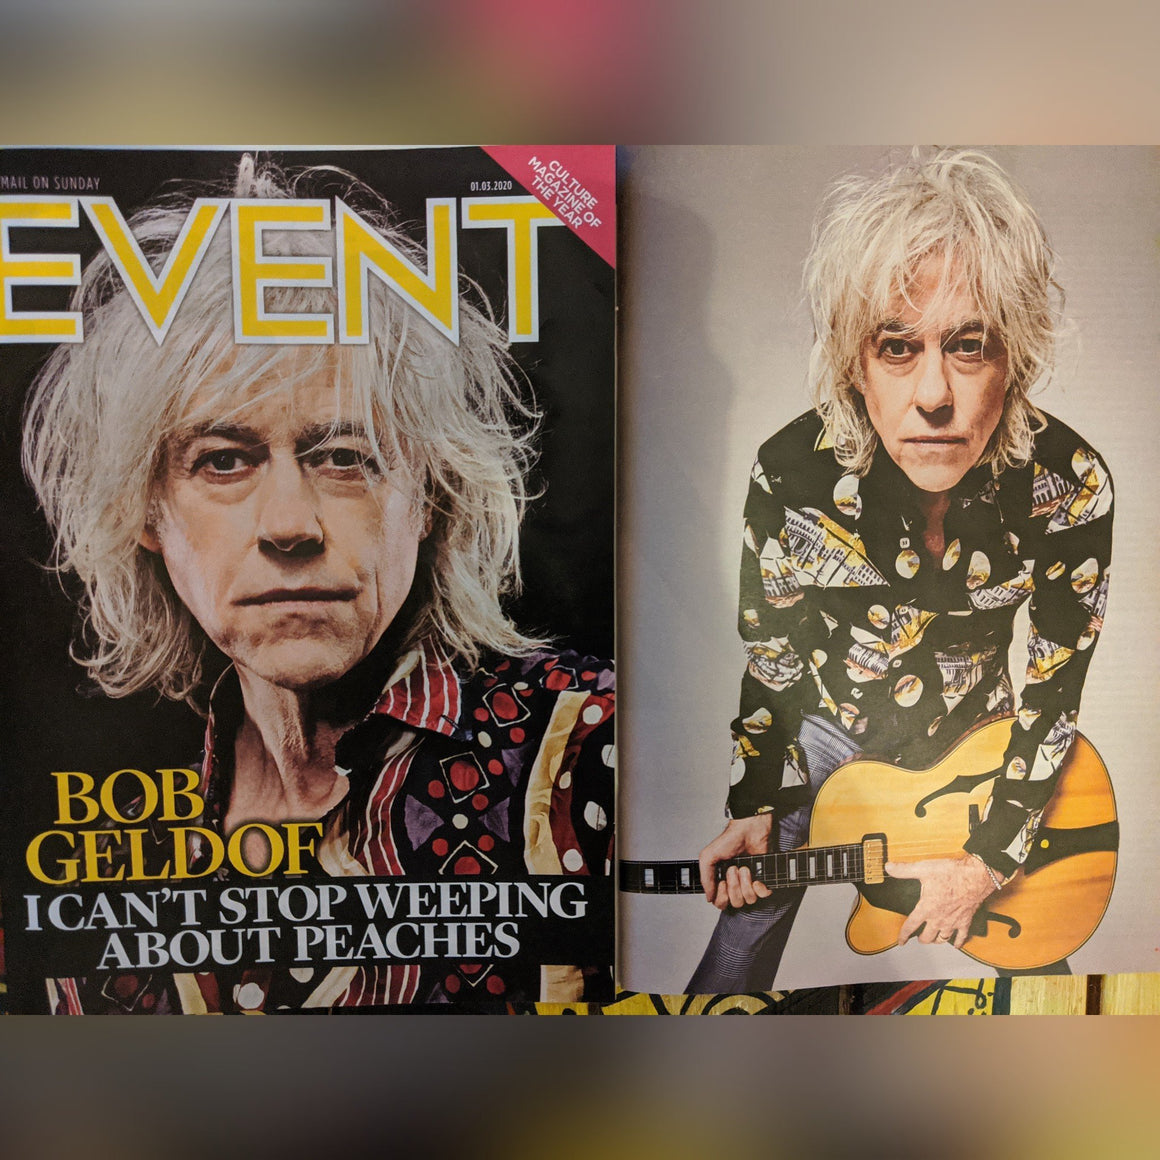 UK EVENT Magazine March 2020: BOB GELDOF Pete Entwhistle THE WHO